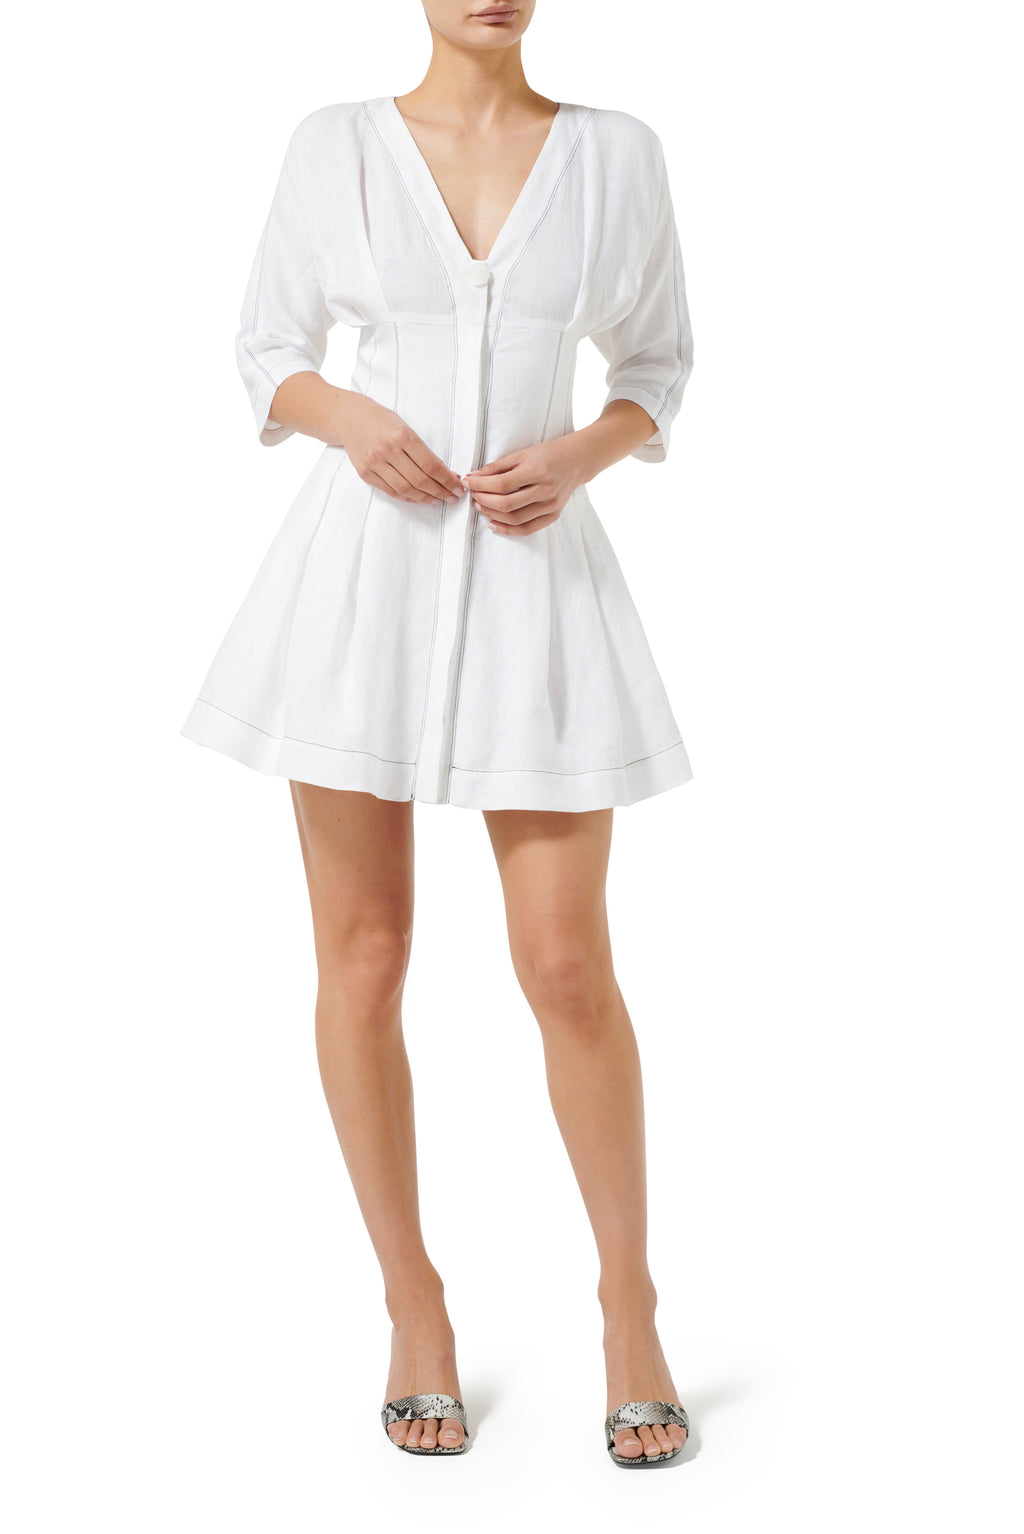 Pasadena Mini Dress - White